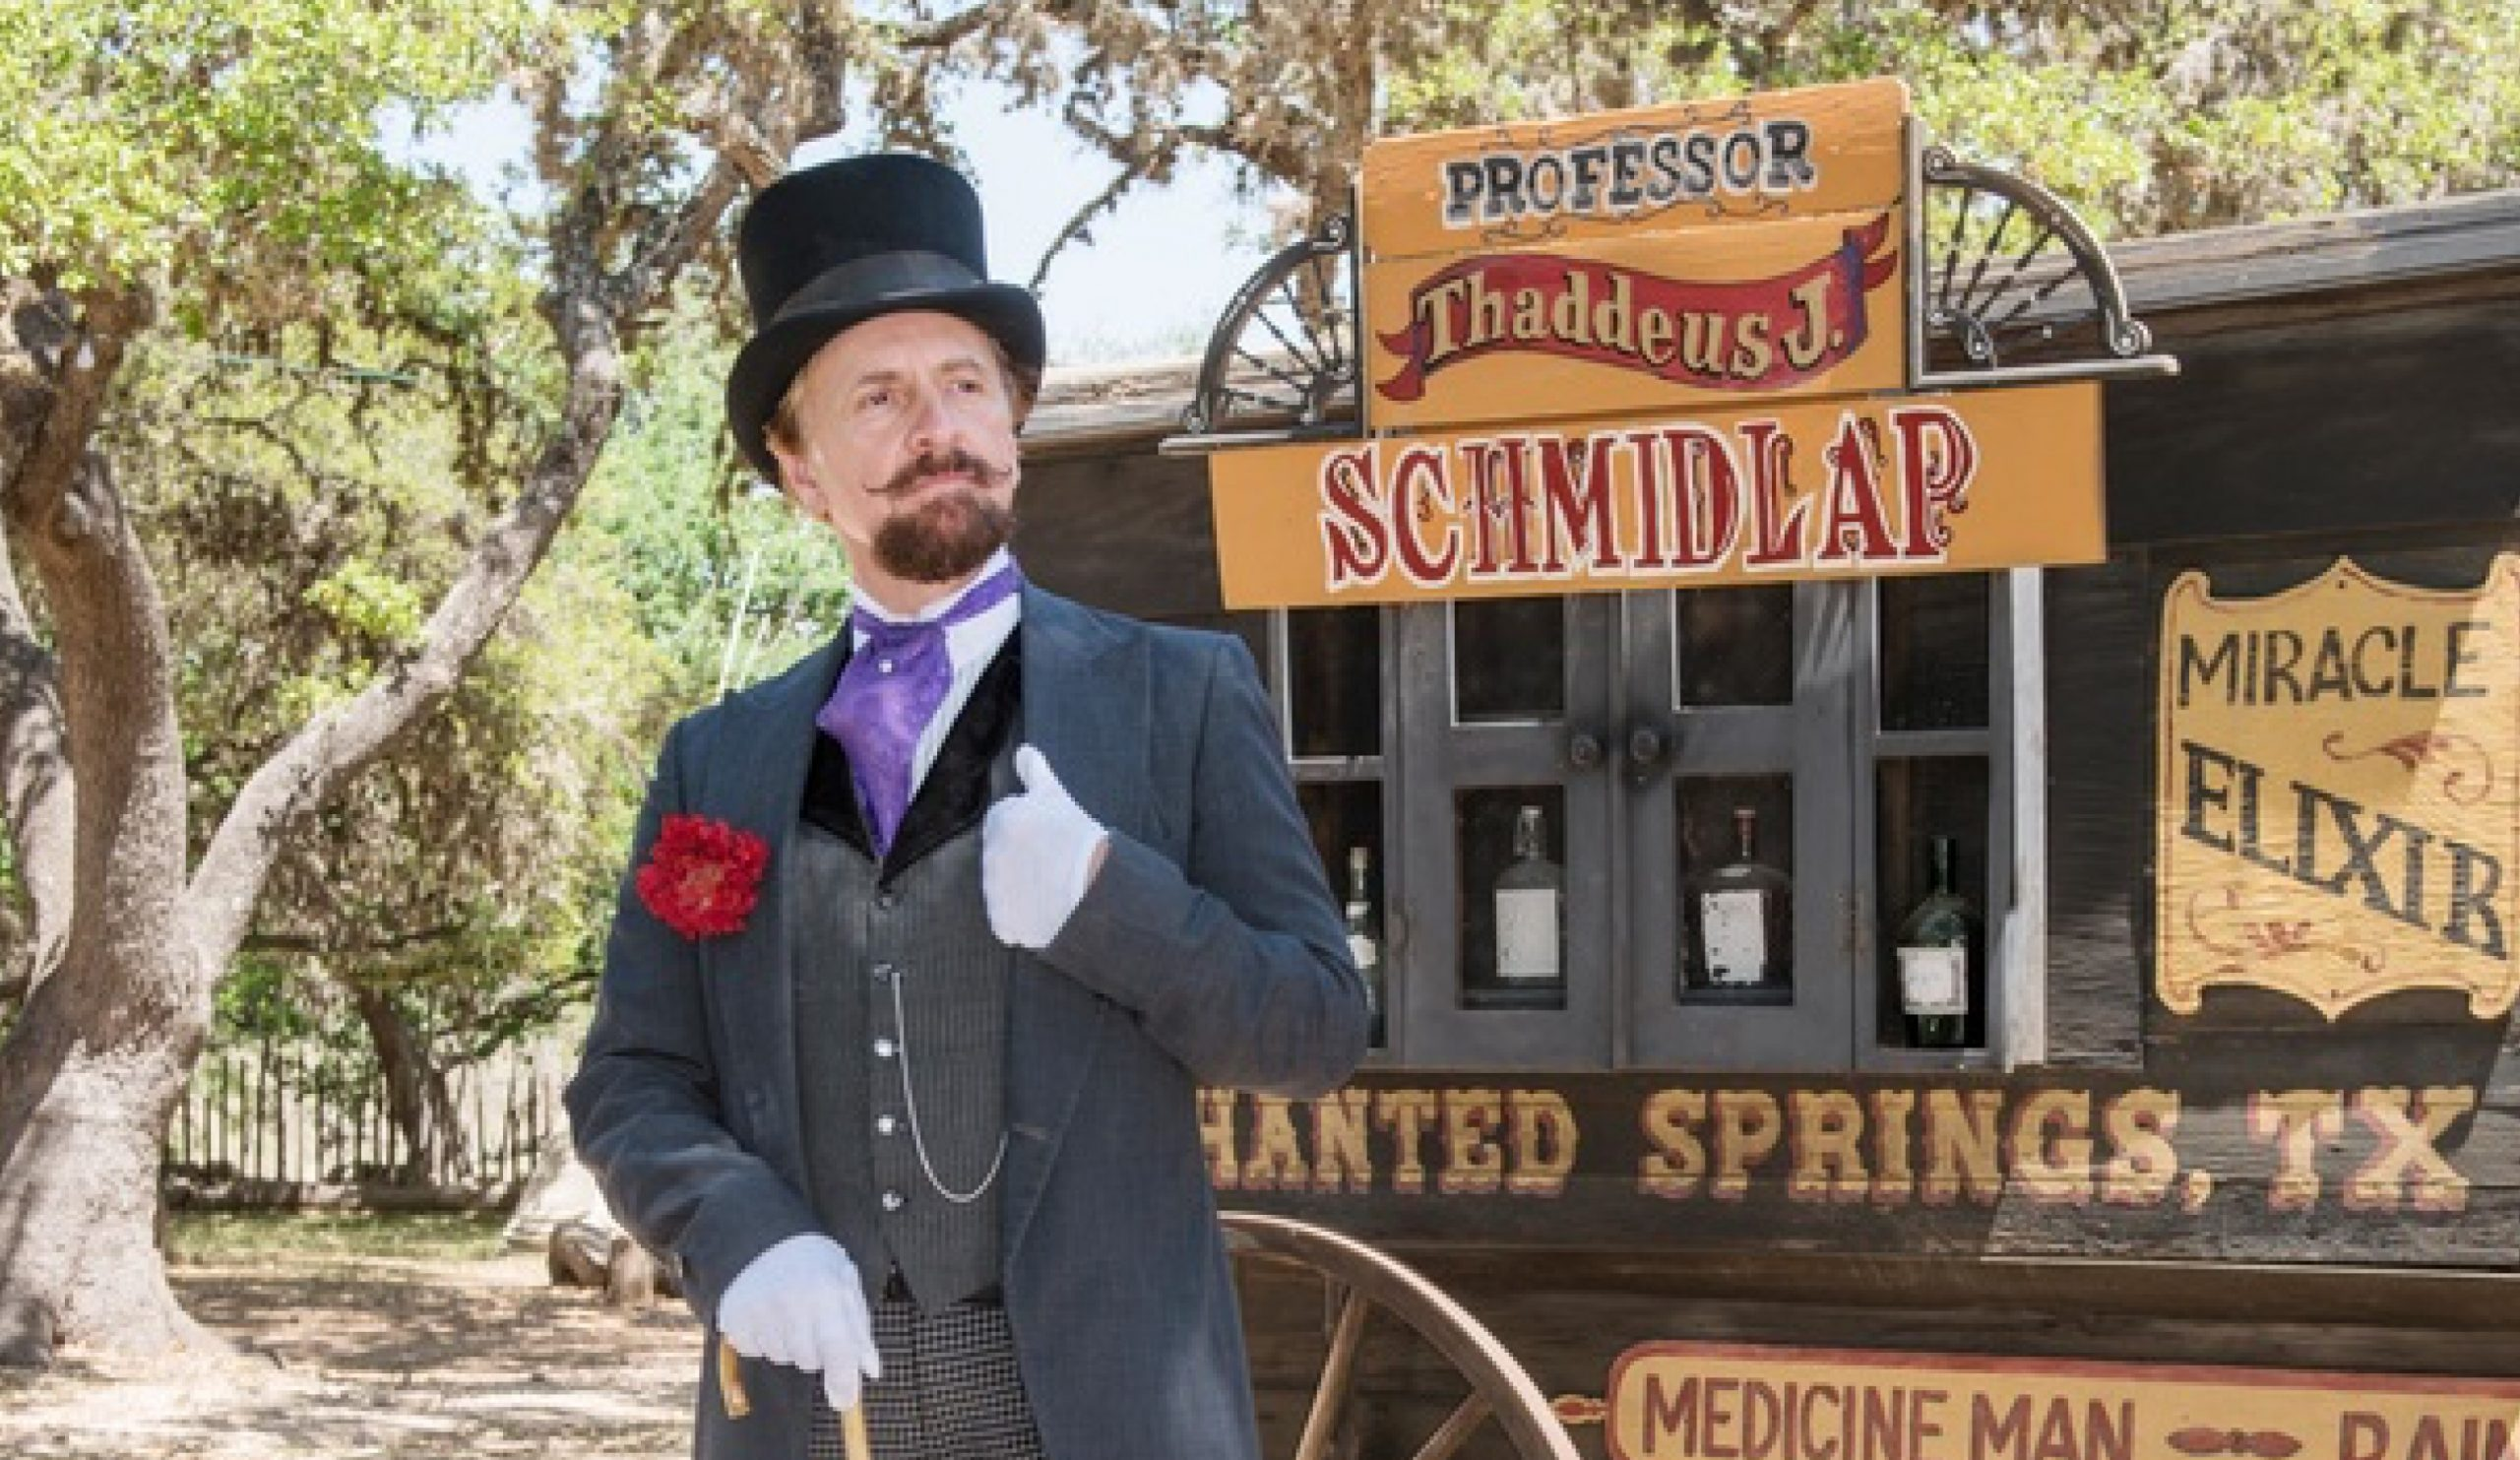 The snake oil salesman has become a symbol of fraud in medicine. Now, medicines and medical devices are regulated – but it still pays to know how to make sure your devices are approved for use.